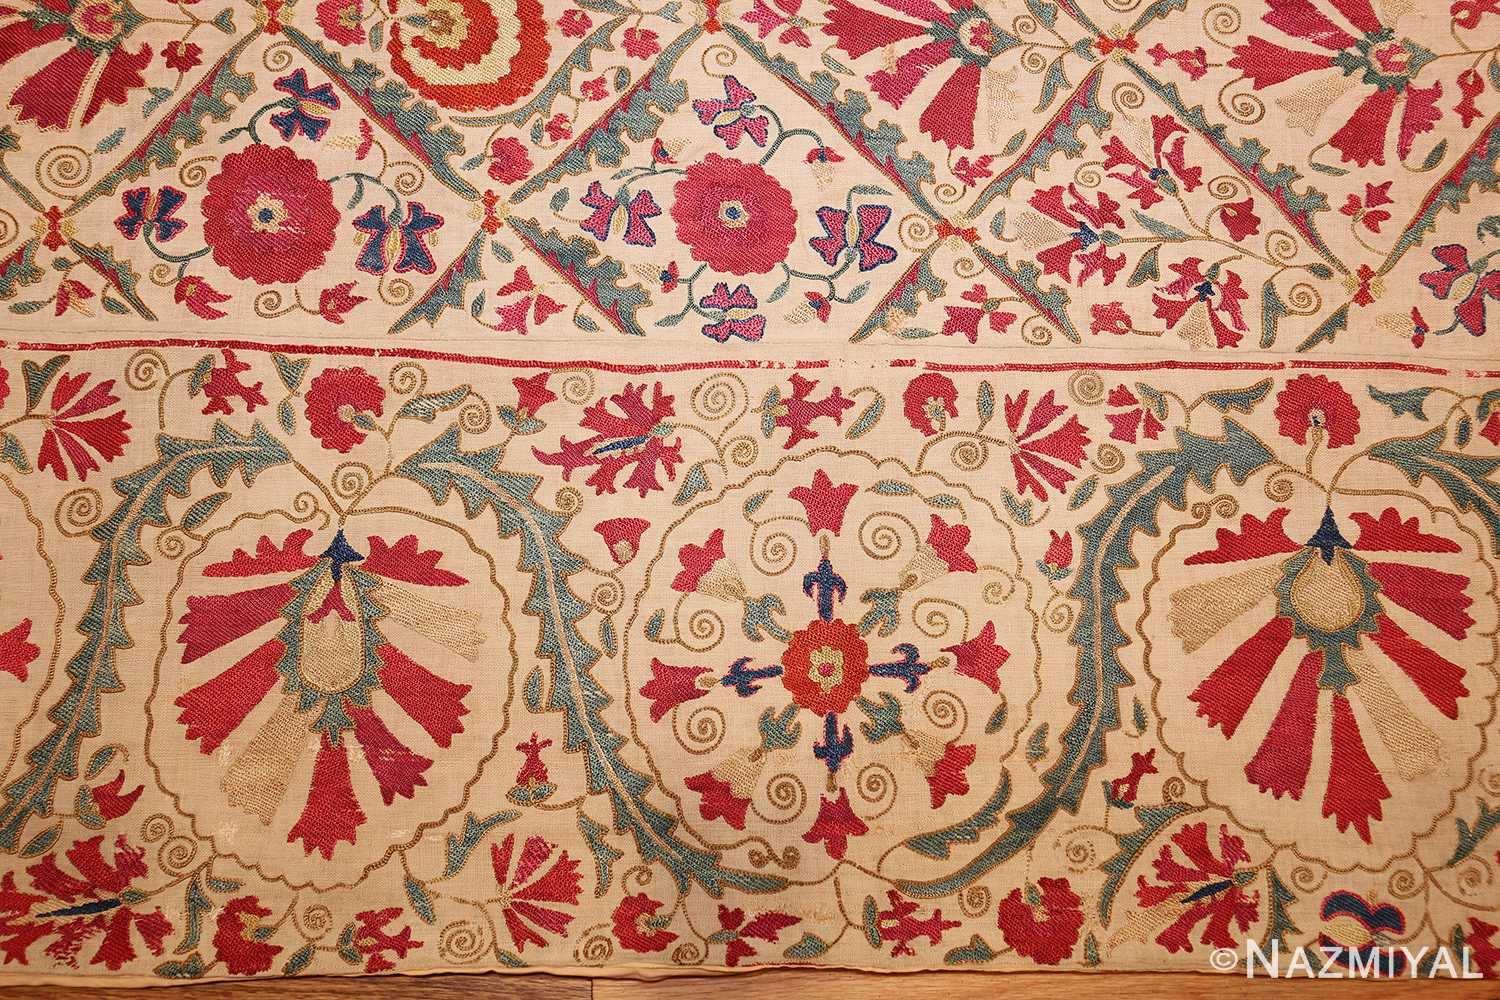 Early 19th Century Suzani Uzbek Textile 49254 Nazmiyal Rugs